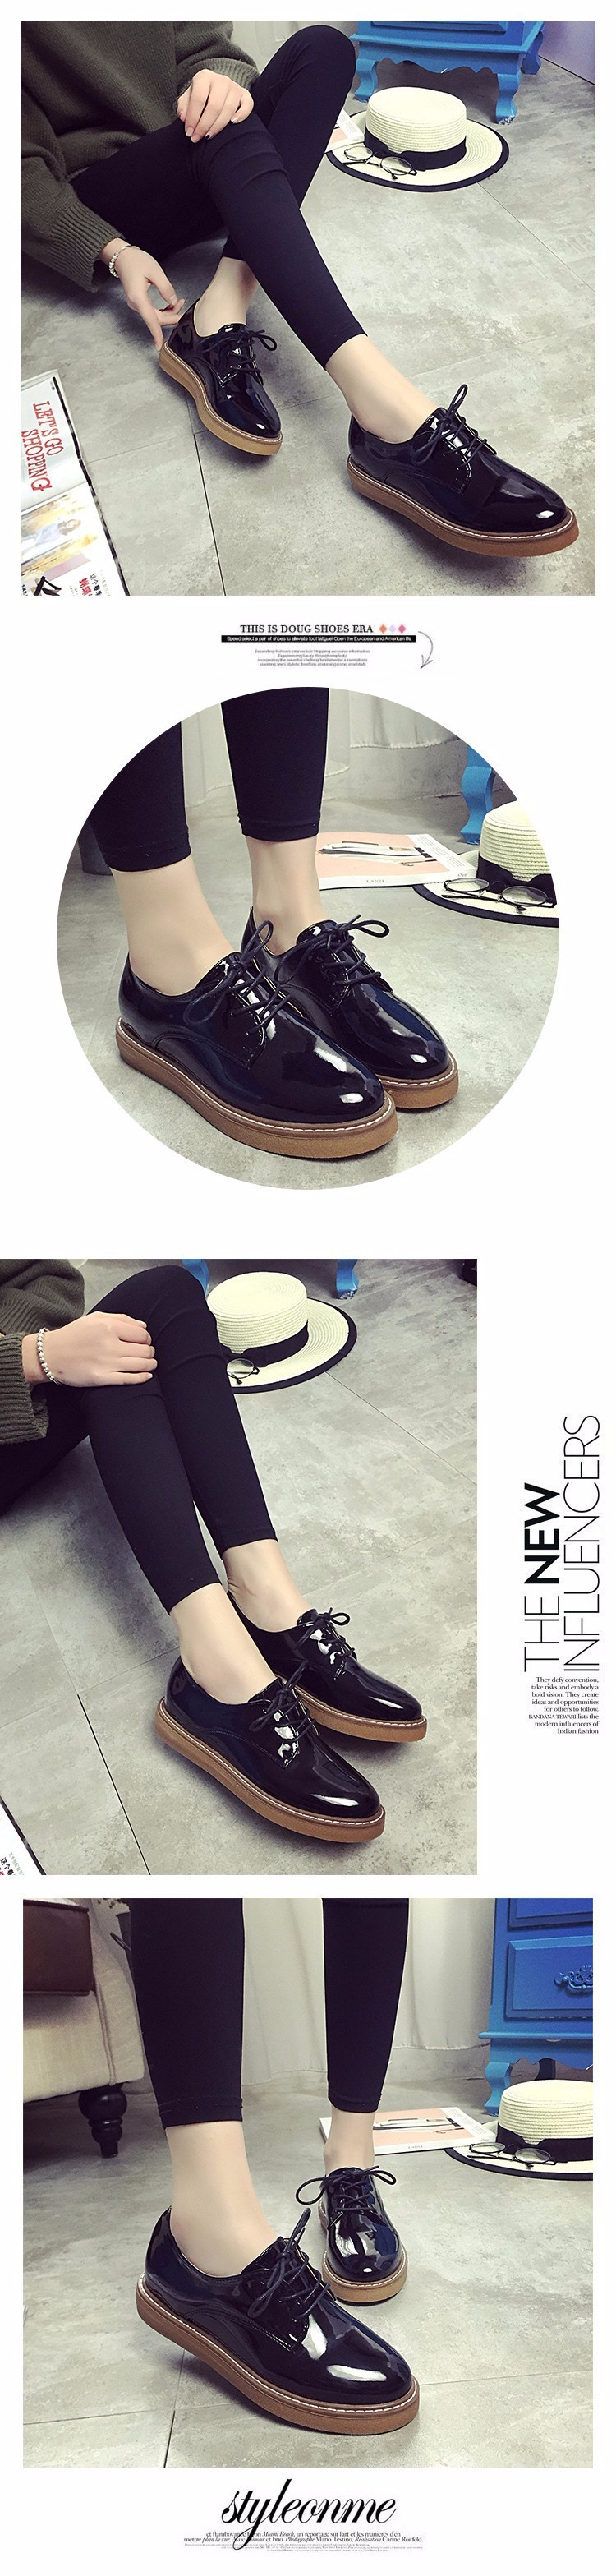 2016 New Spring Fall Hollow Style Fashion Flat Women Loafers Shoes Platform Lace Up Female Casual Shoes Black White Z4.5